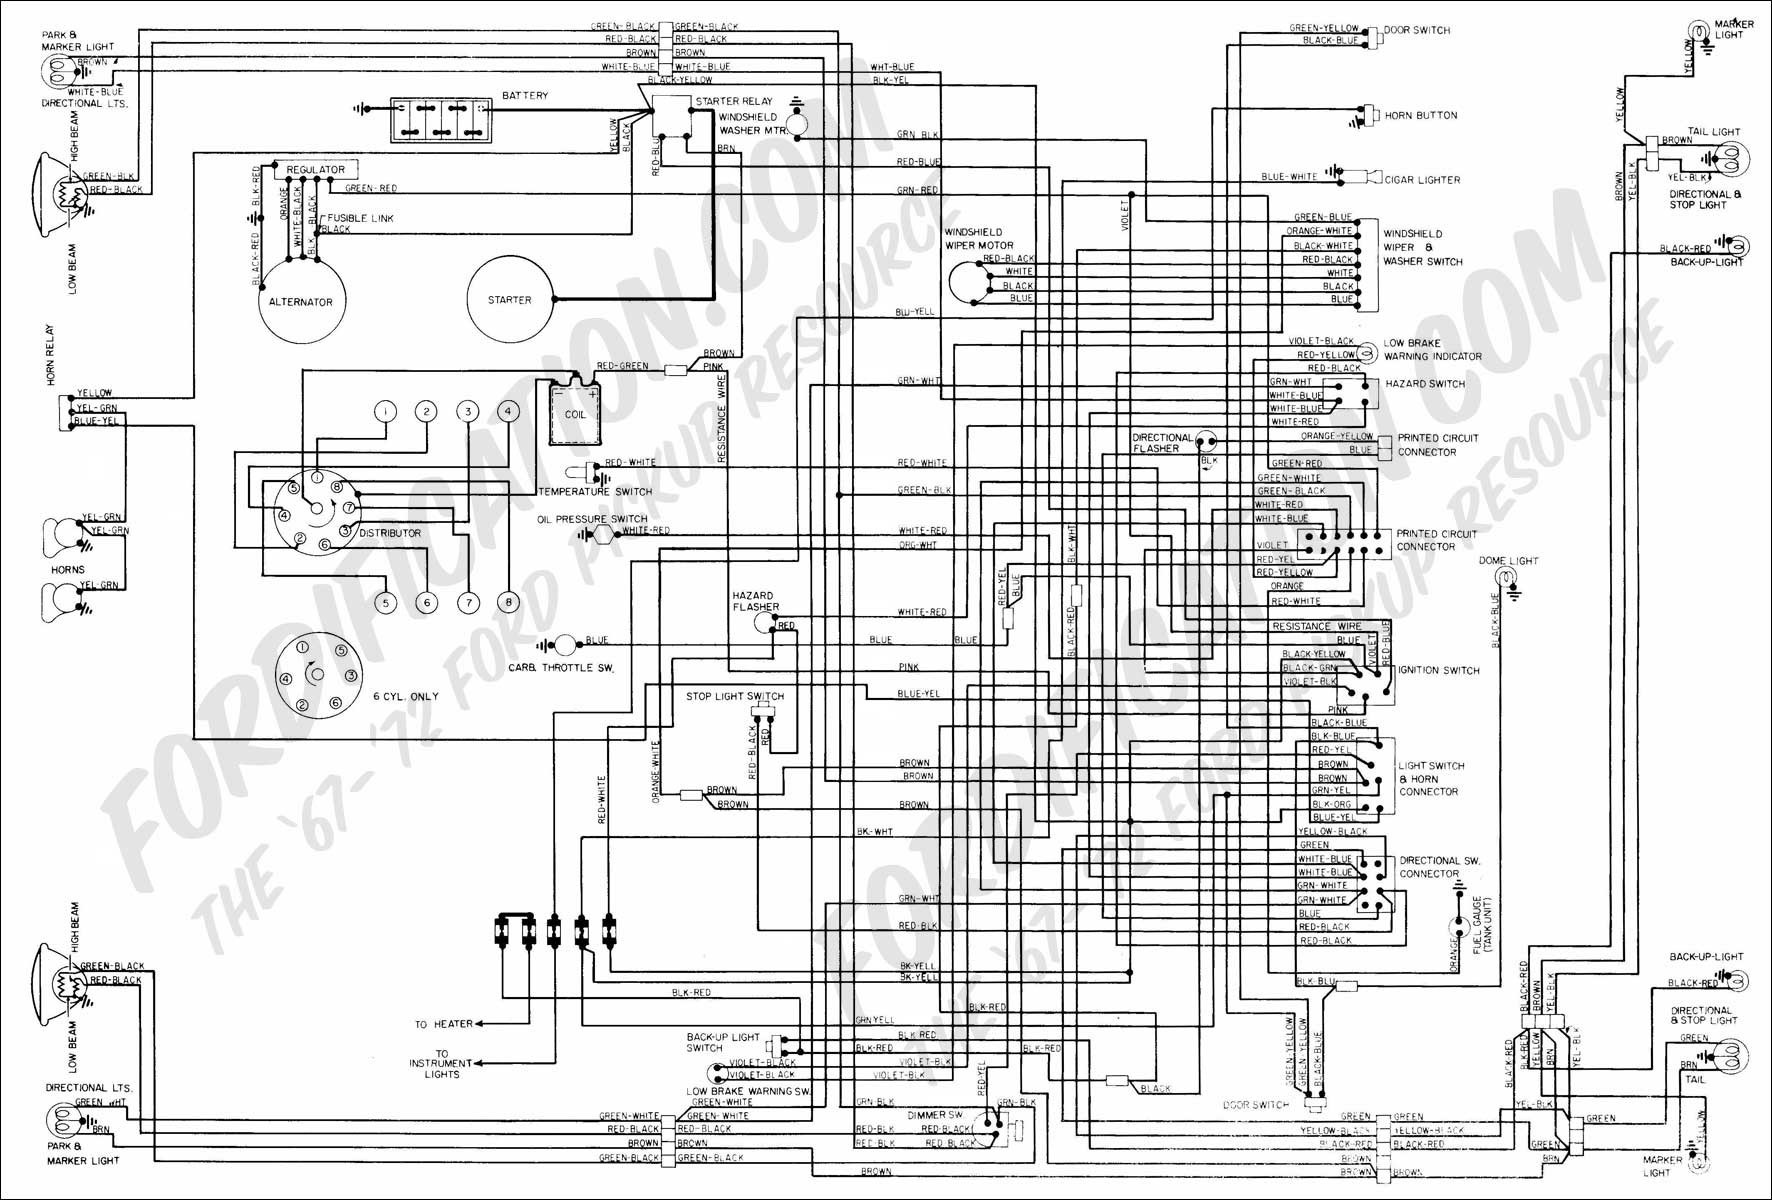 1976 Ford F150 Wiring Diagram from mainetreasurechest.com